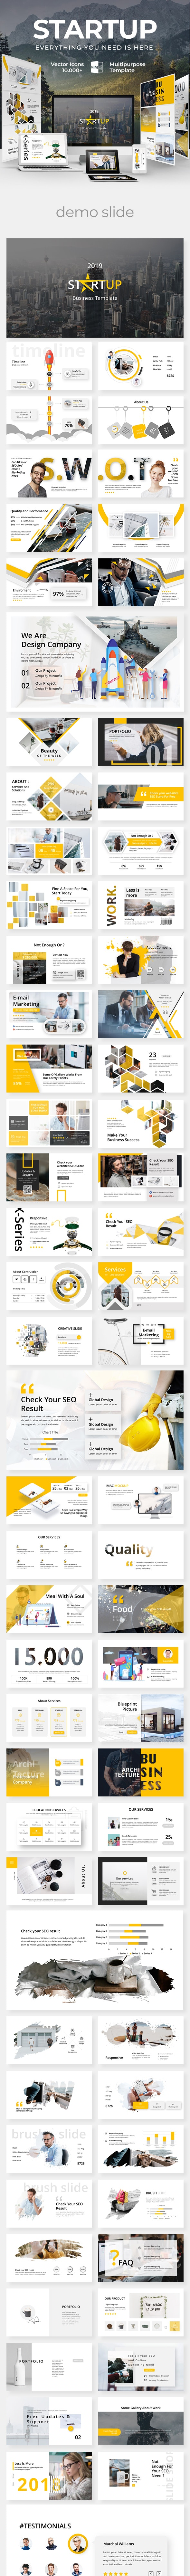 Starup Business Creative Powerpoint Template - Business PowerPoint Templates